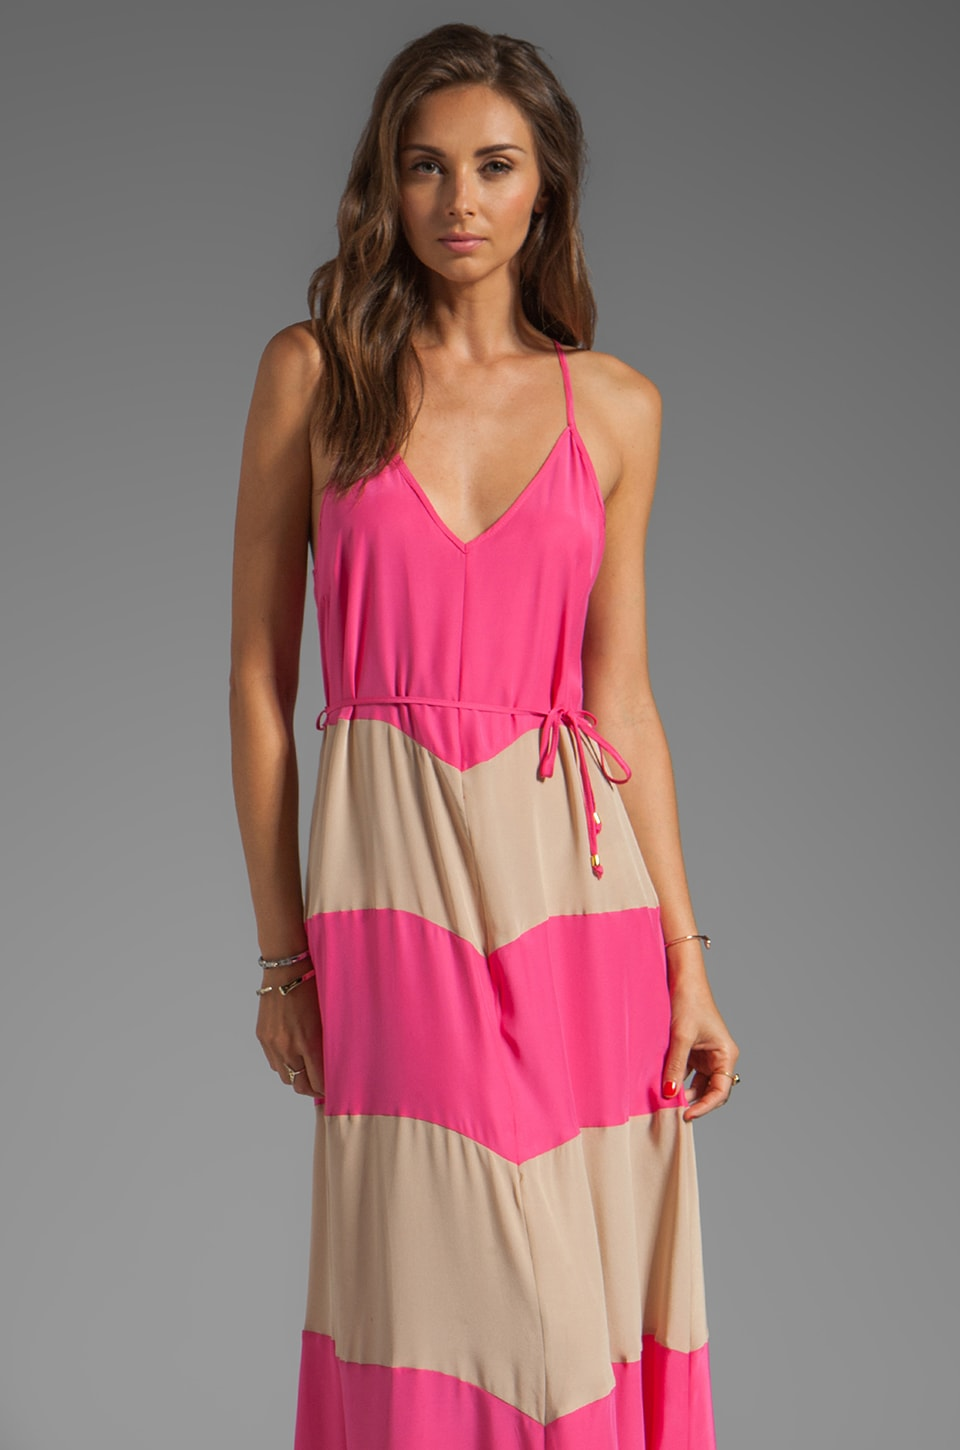 Karina Grimaldi Somer Maxi Dress in Pink